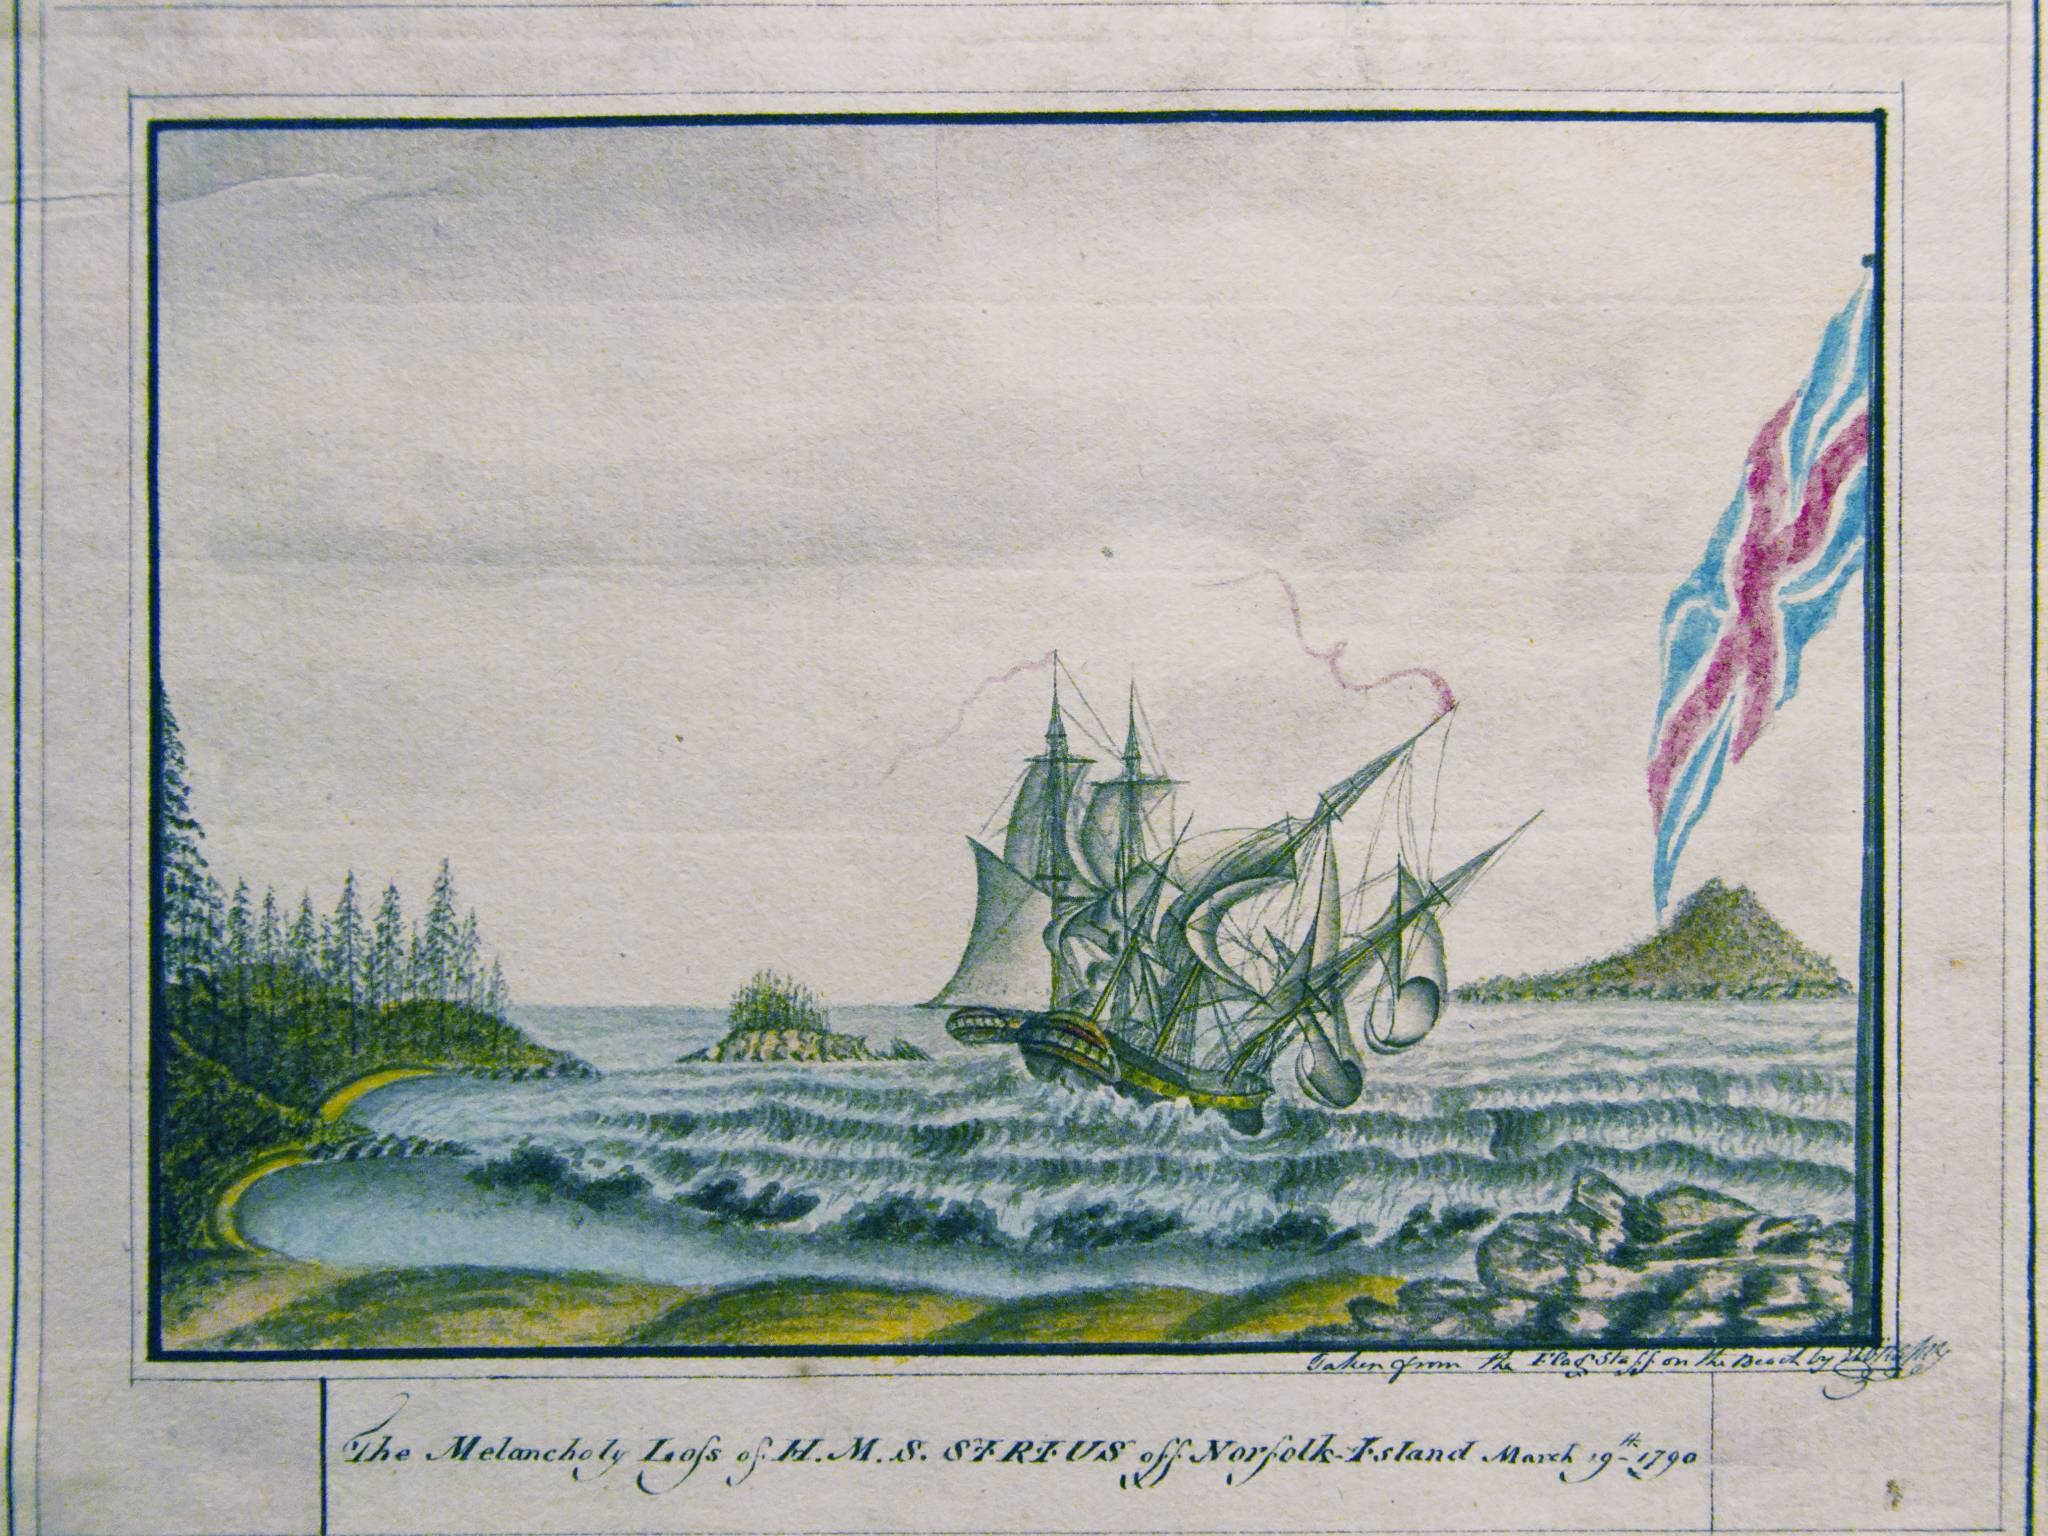 The Melancholy Loss Of HMS Sirius Off Norfolk Island March 19th 1790 George Raper